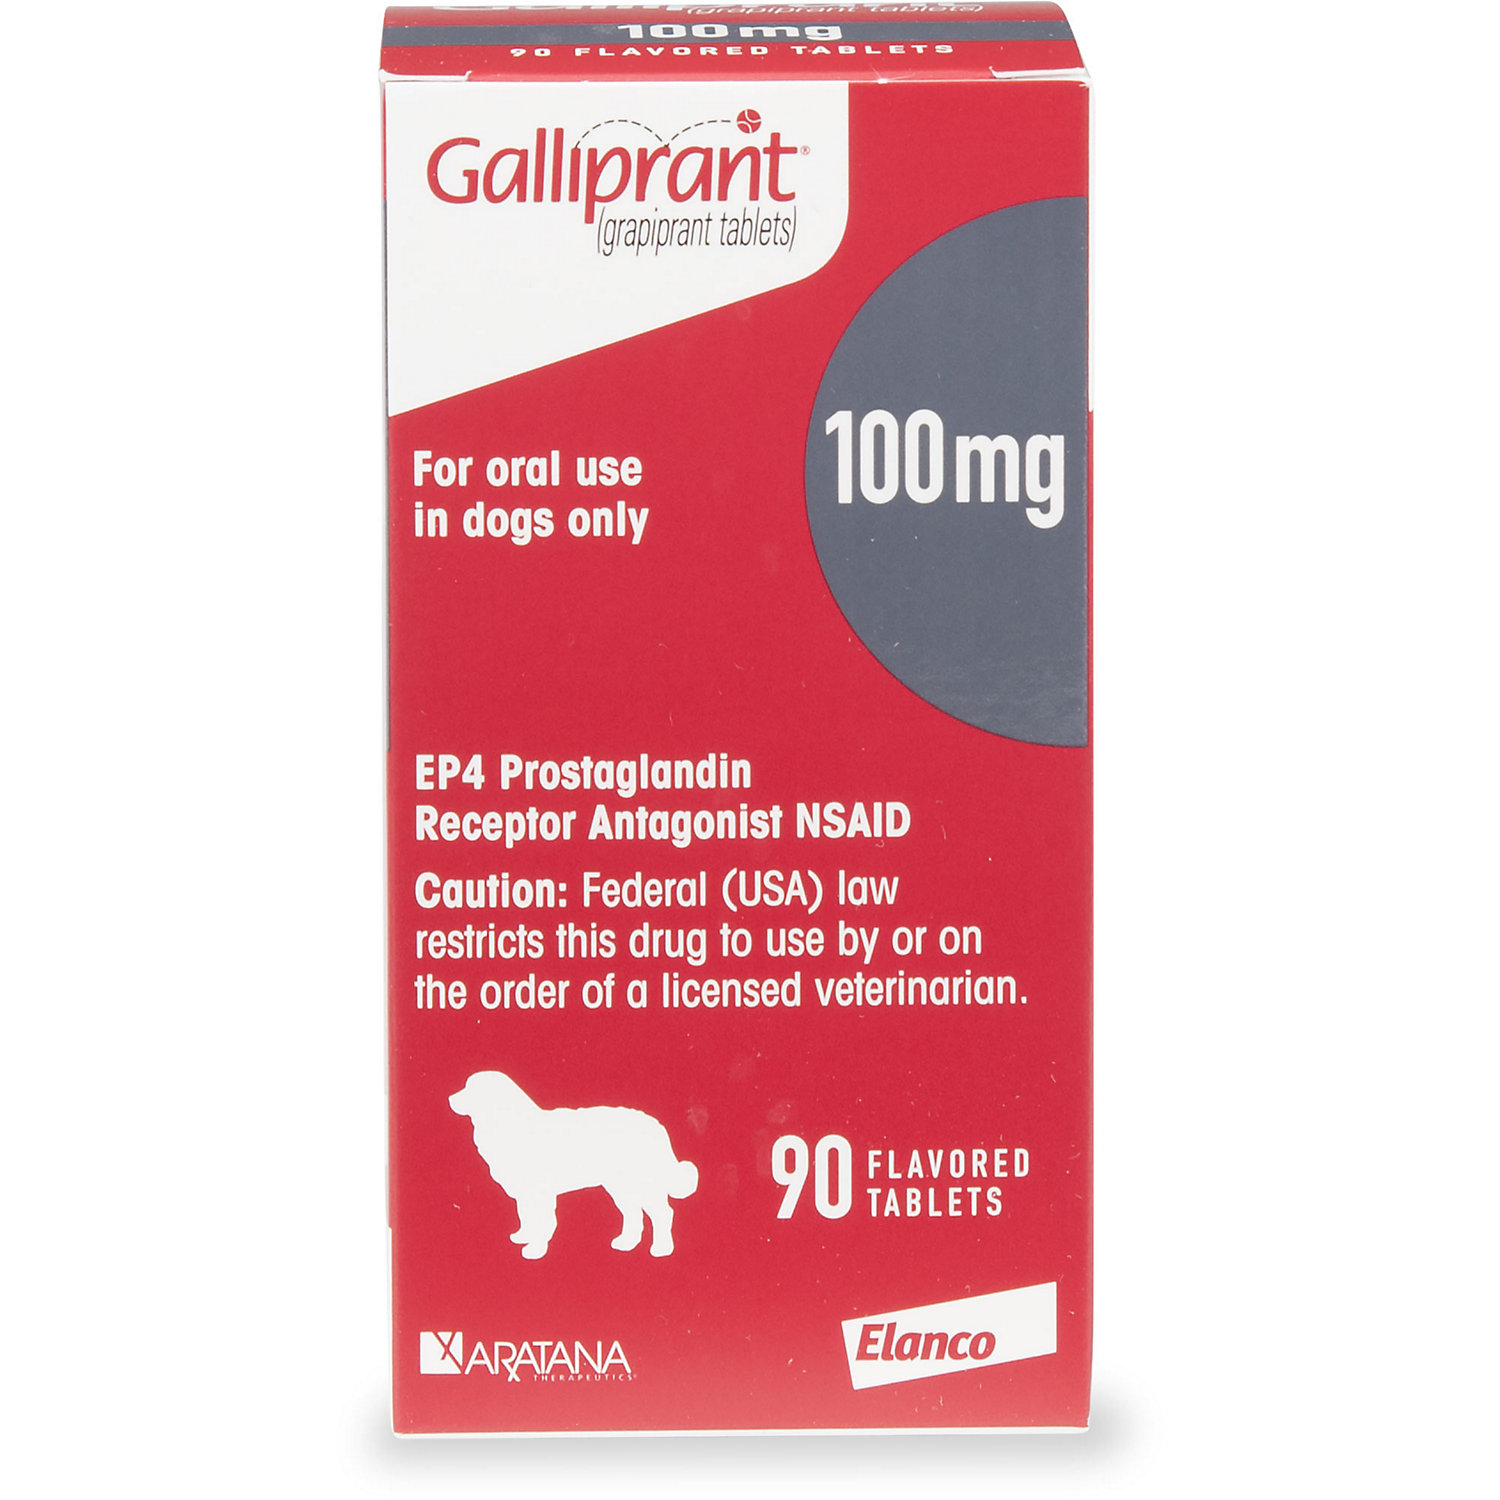 Galliprant 100 Mg Flavored Tablets For Dogs 30 Count Vet Clinics Medical Prescription Dogs